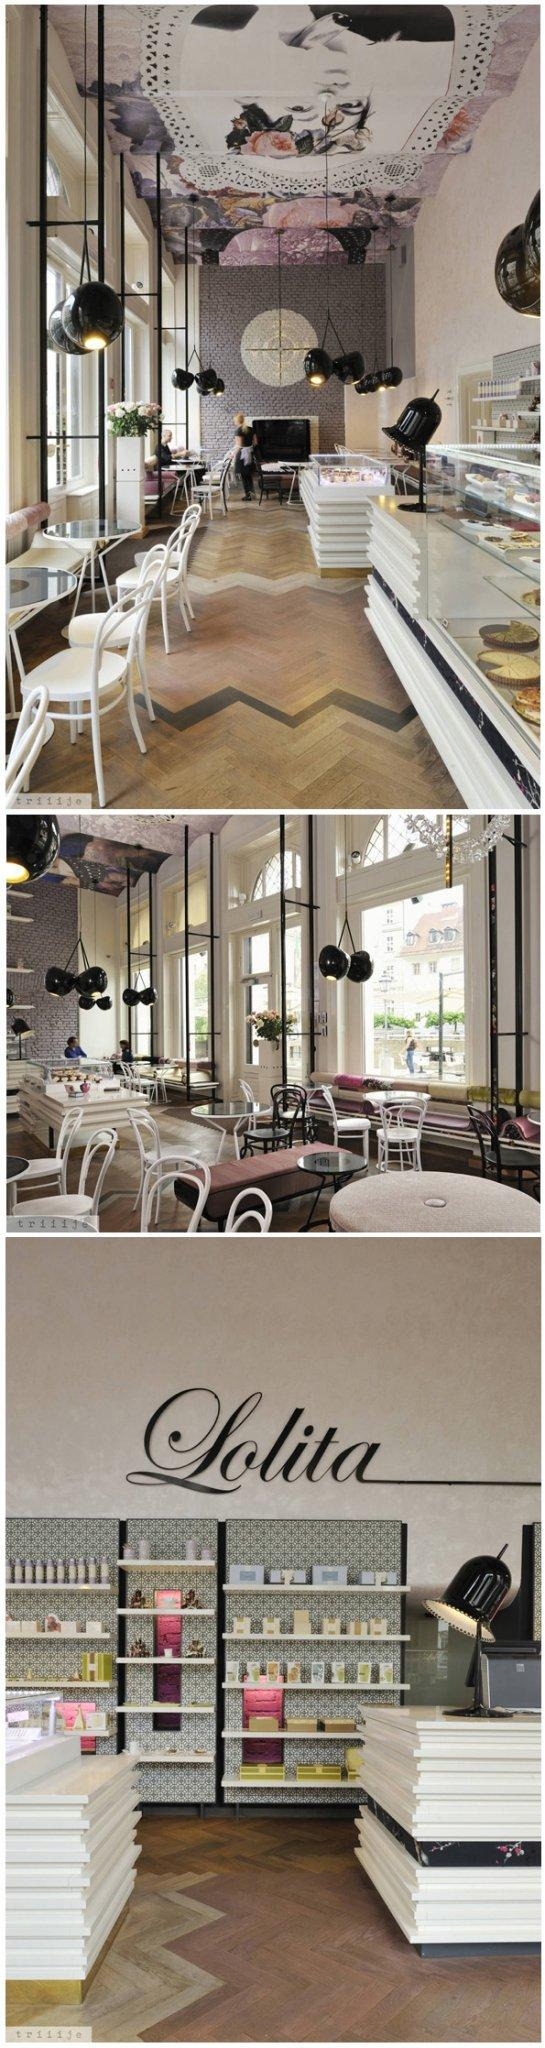 19 coffee shop and cafe interior design must-see images | founterior